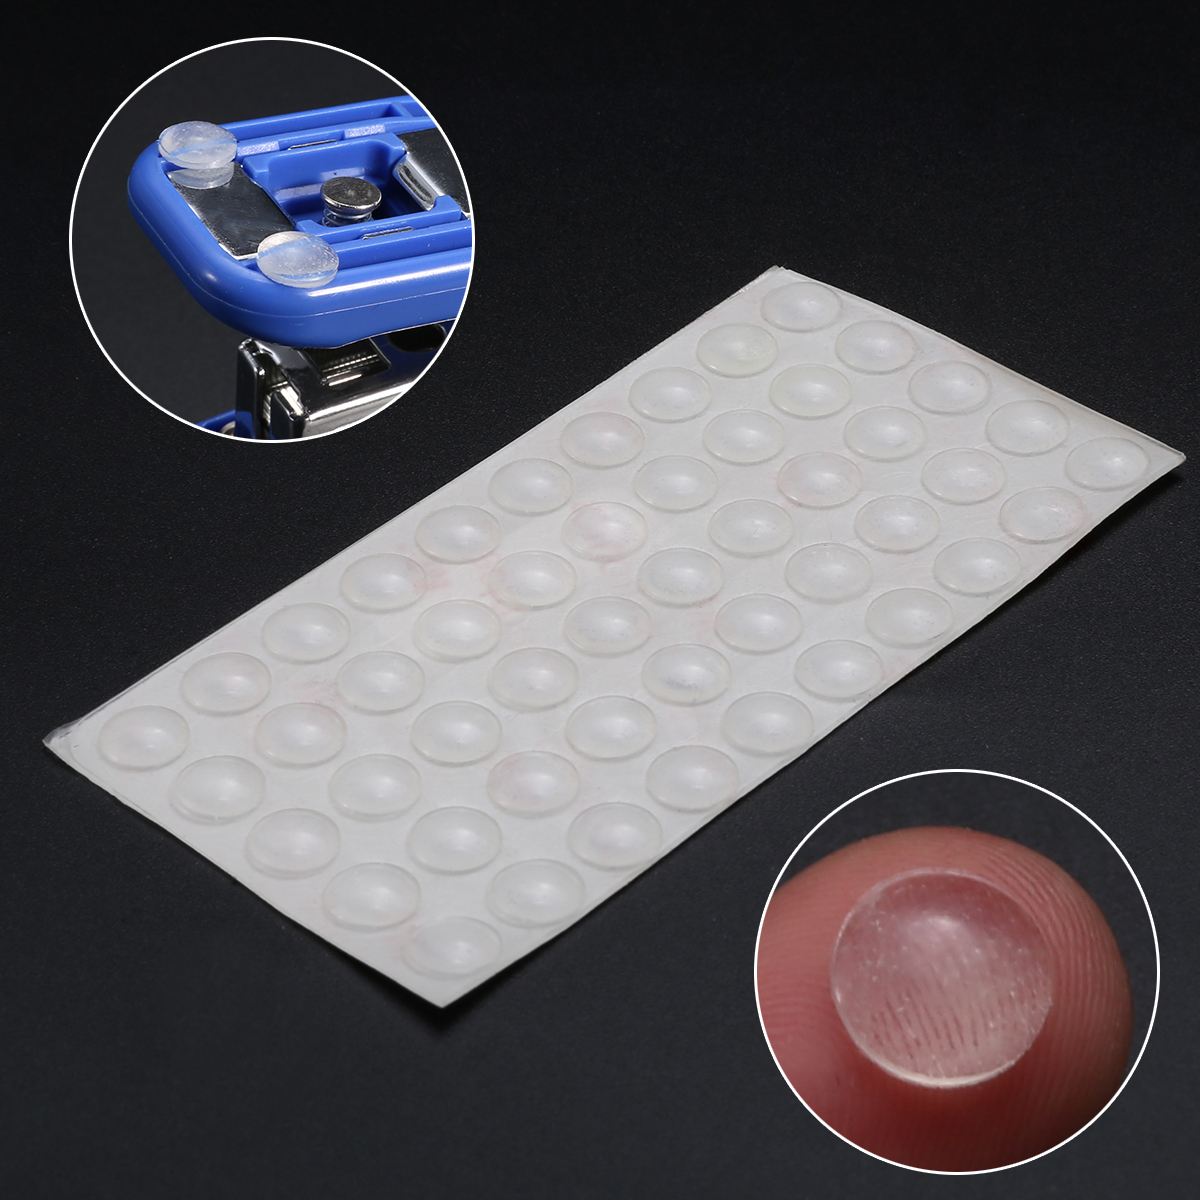 50Pcs  Self Adhesive Rubber Feet Pad Silicone Transparent Bumpers Door Buffer Pad Damper Feet Pads For Door Furniture